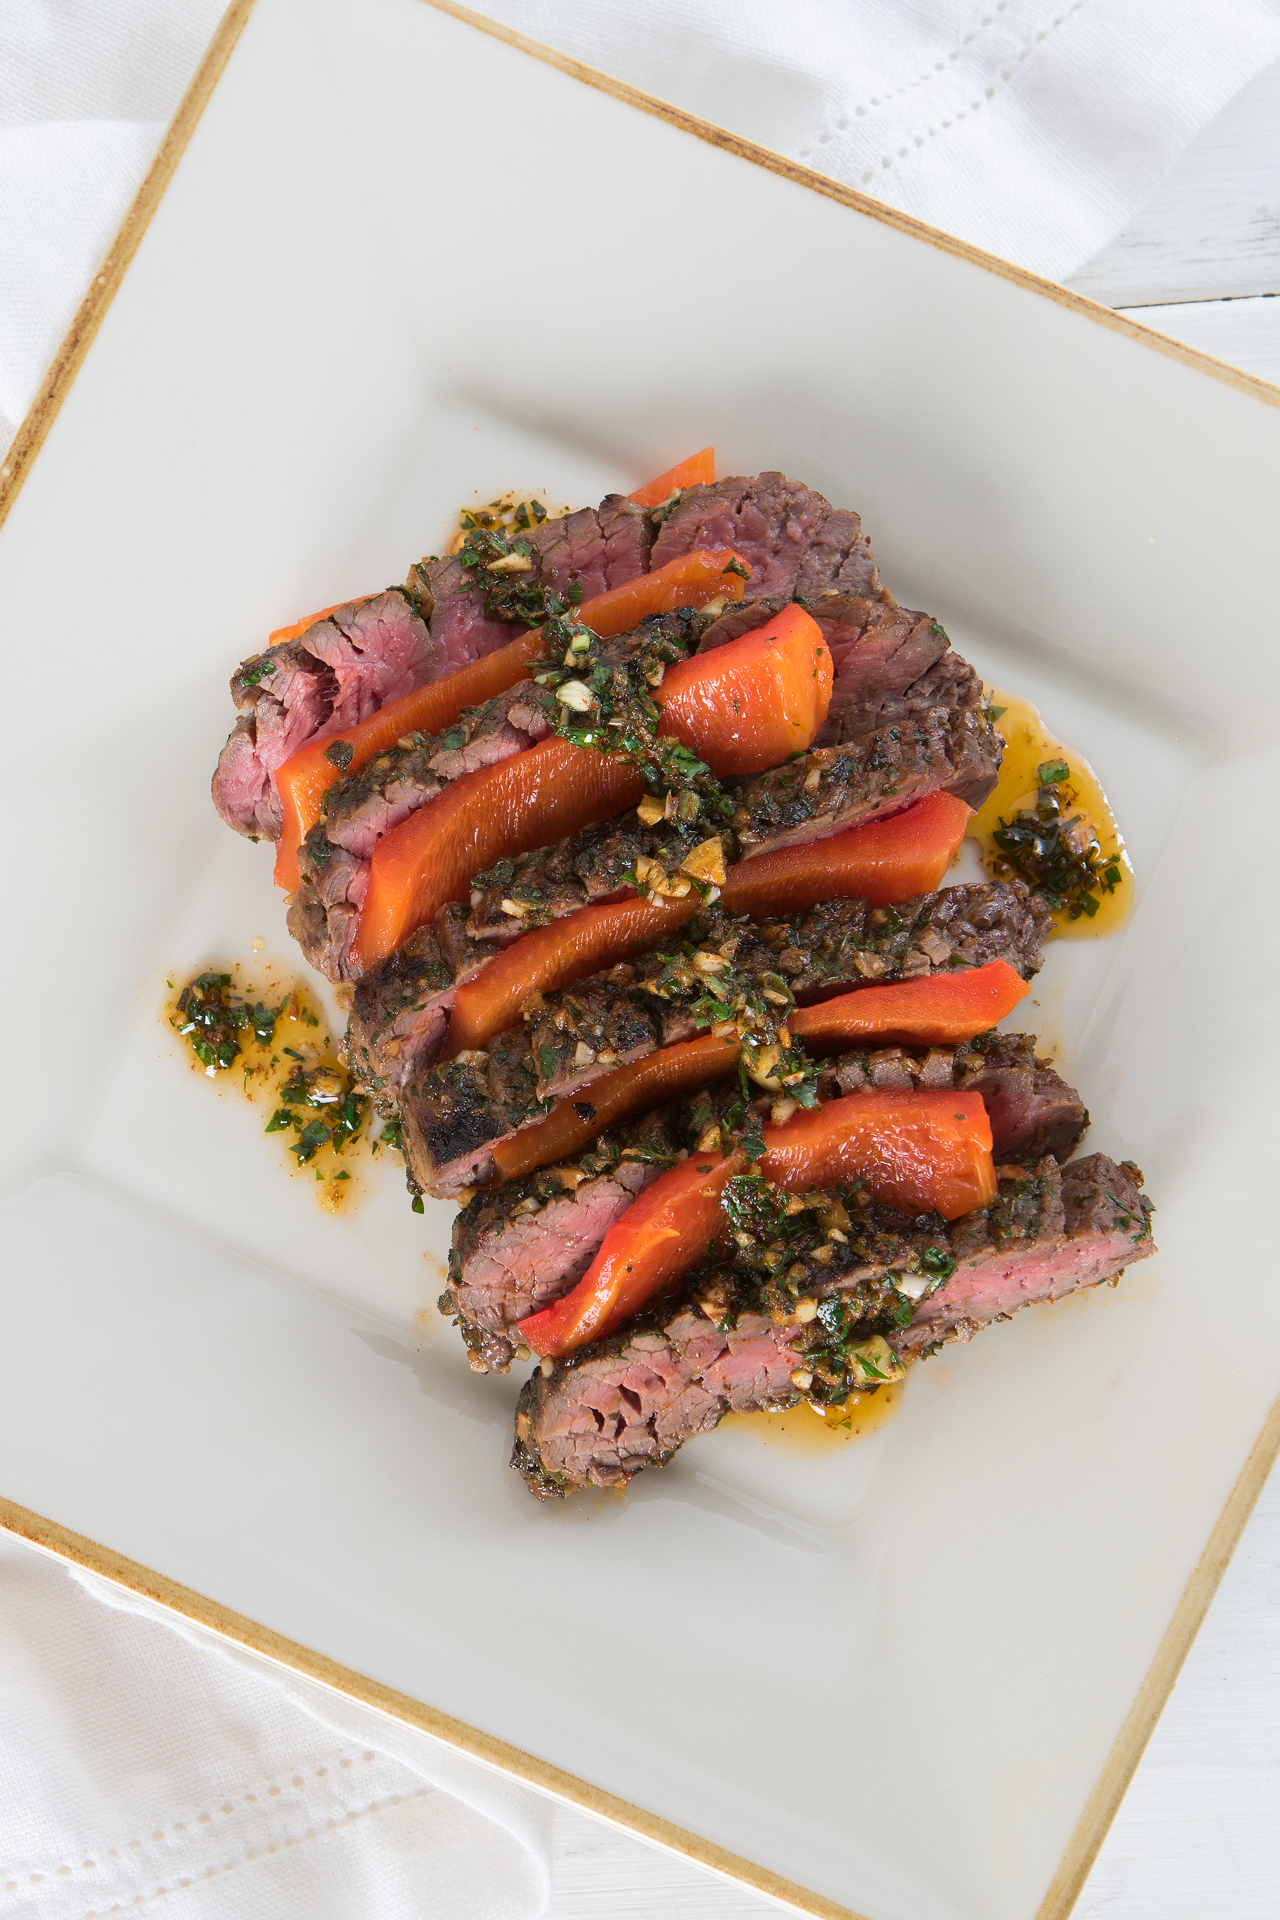 Herb Grilled Skirt Steak with Red Bell Pepper